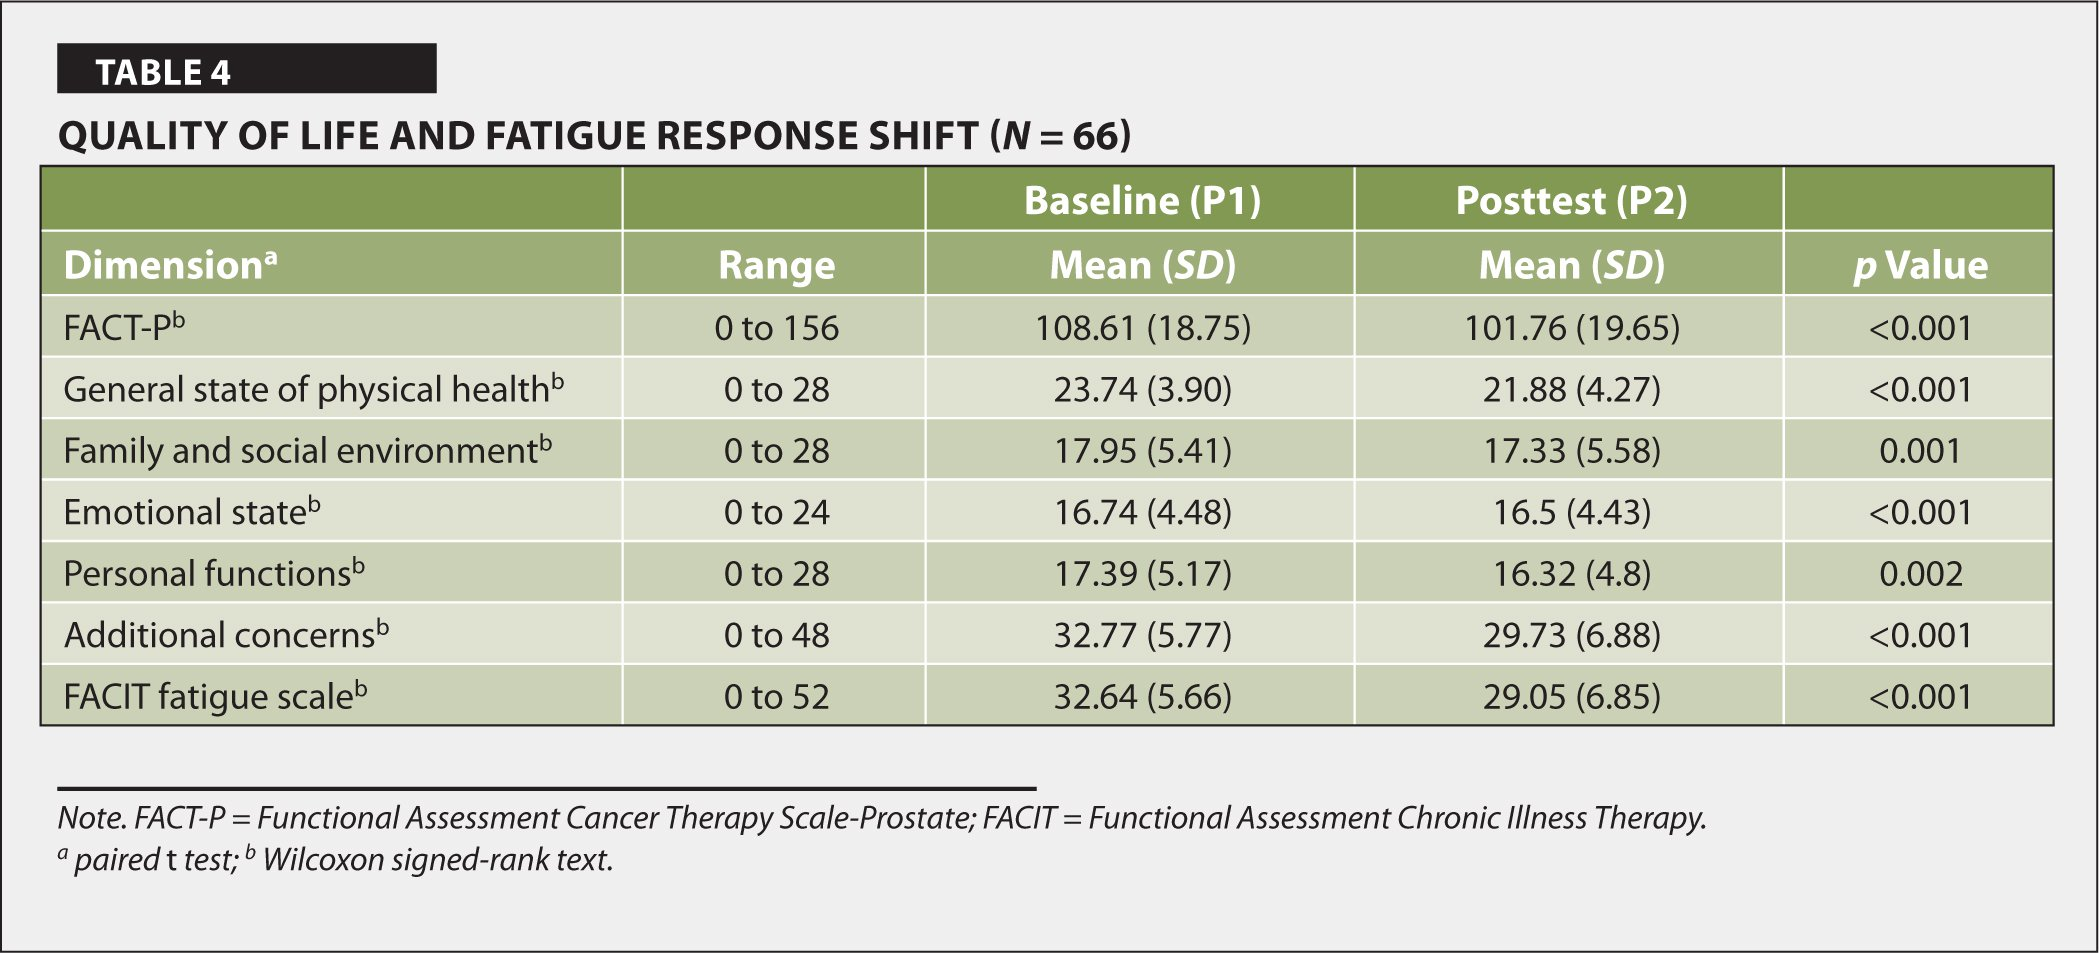 Quality of Life and Fatigue Response Shift (N = 66)